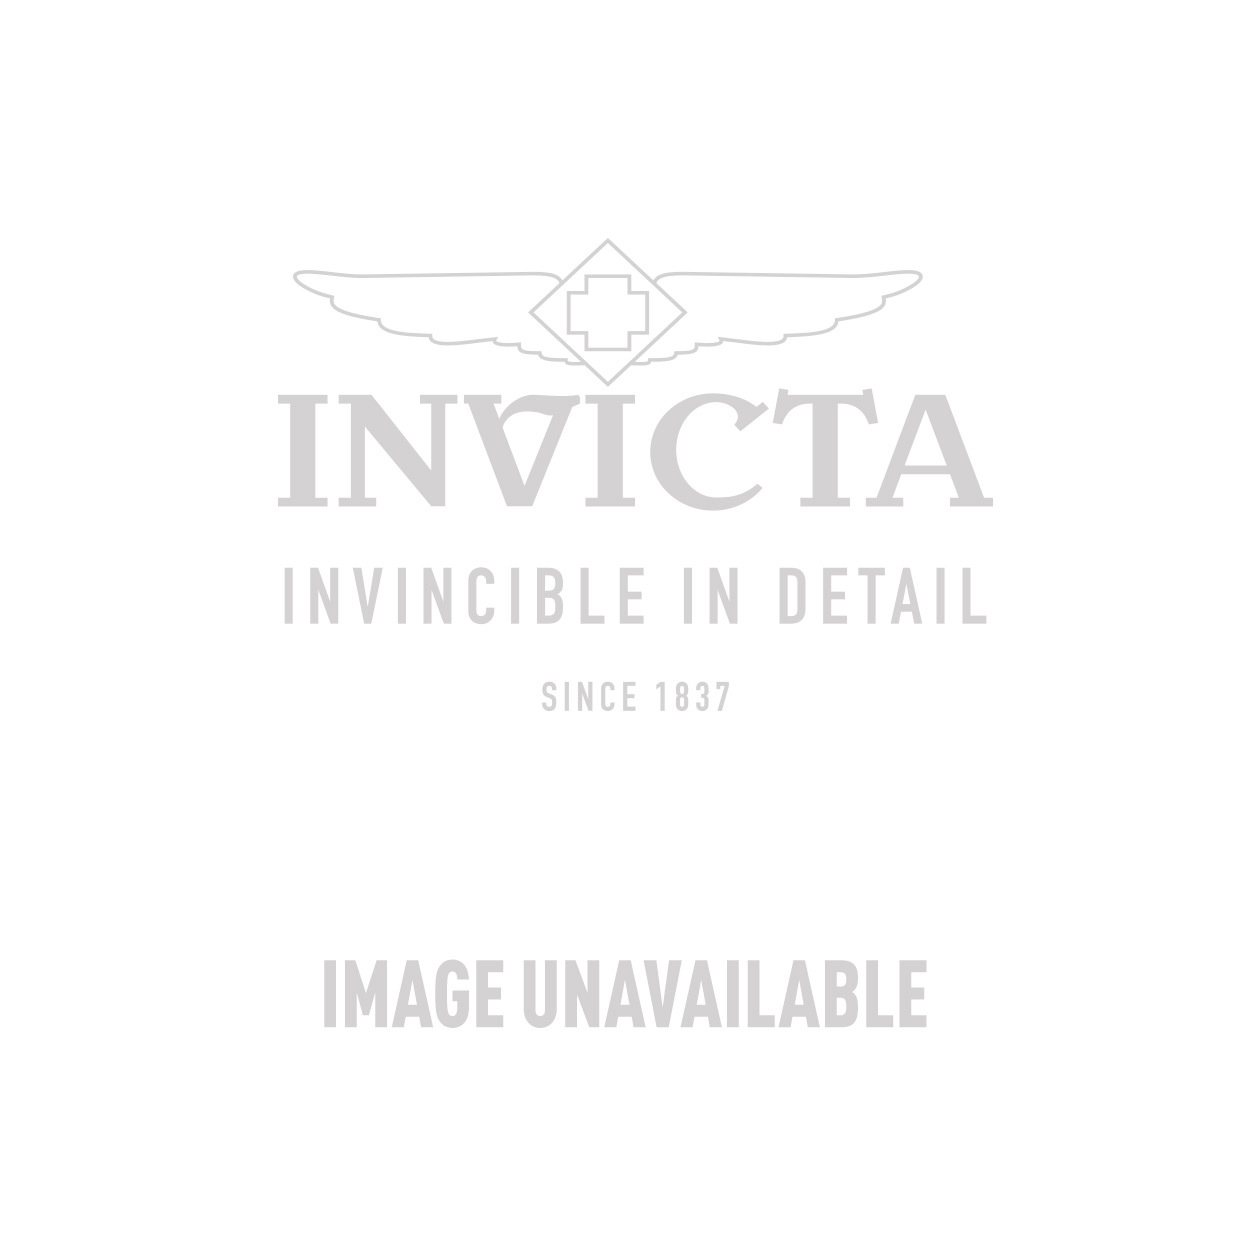 Invicta Corduba Mechanical Watch - Gold case with Gold, Blue tone Stainless Steel, Polyurethane band - Model 17247